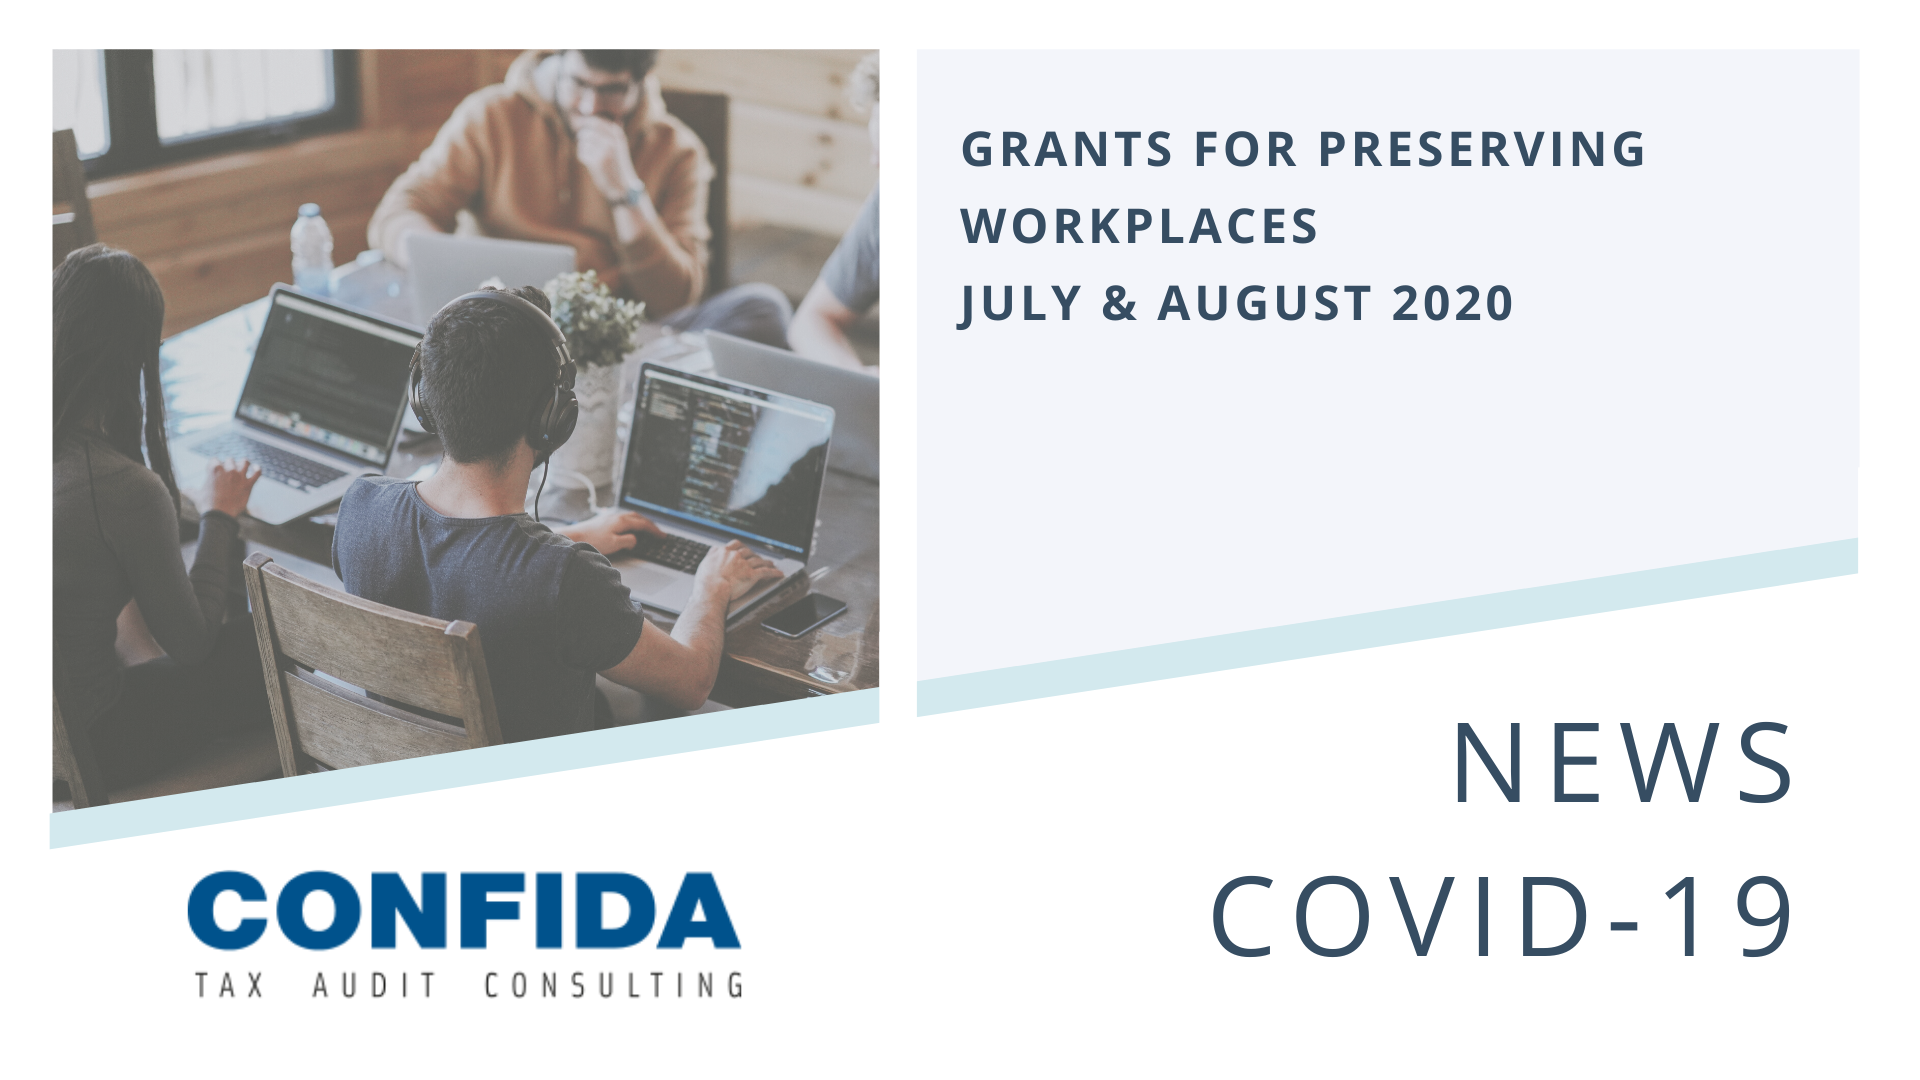 Grants for Preserving Workplaces - July & August 2020